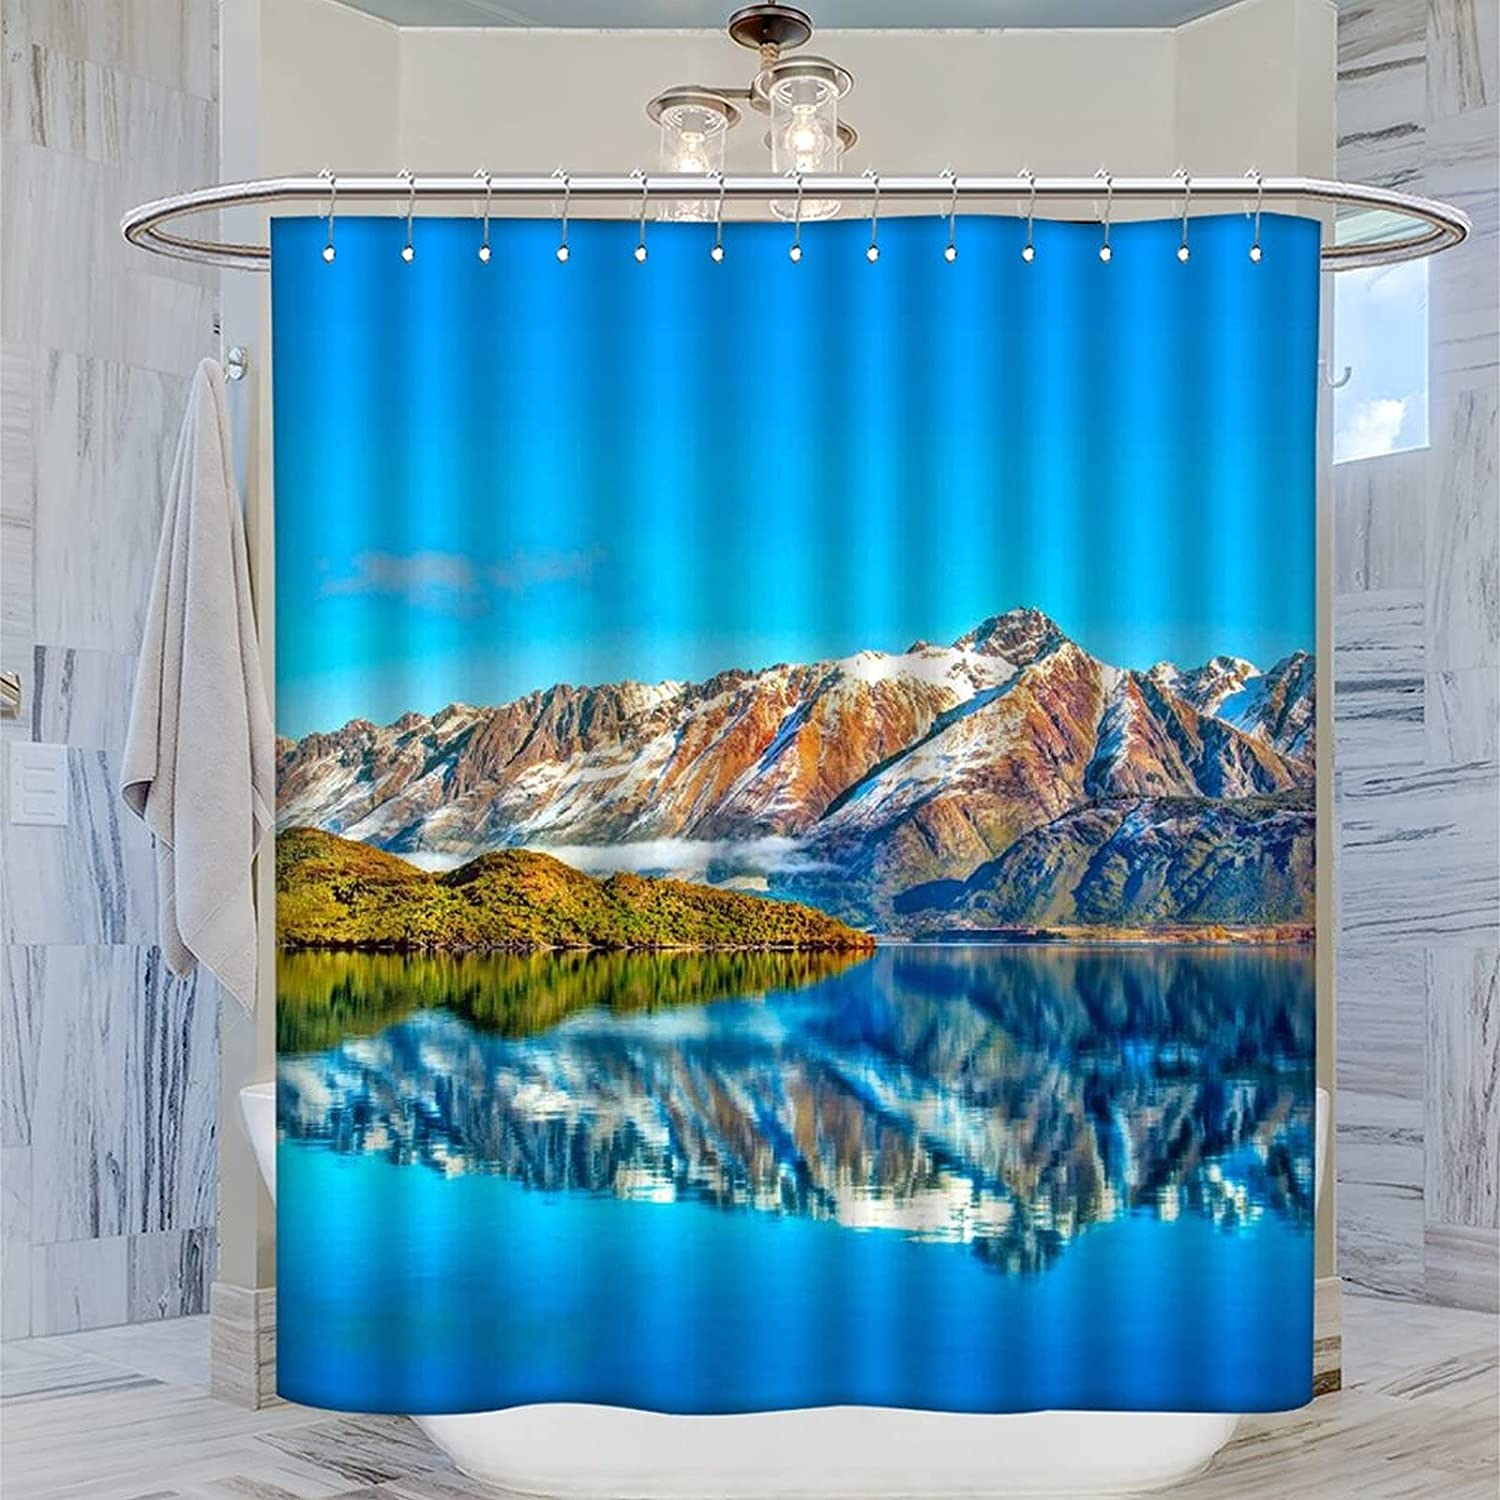 Lakes of Mountains and New Shipping Free Shipping Islands Curtain Bathro College Shower Ranking TOP13 Art